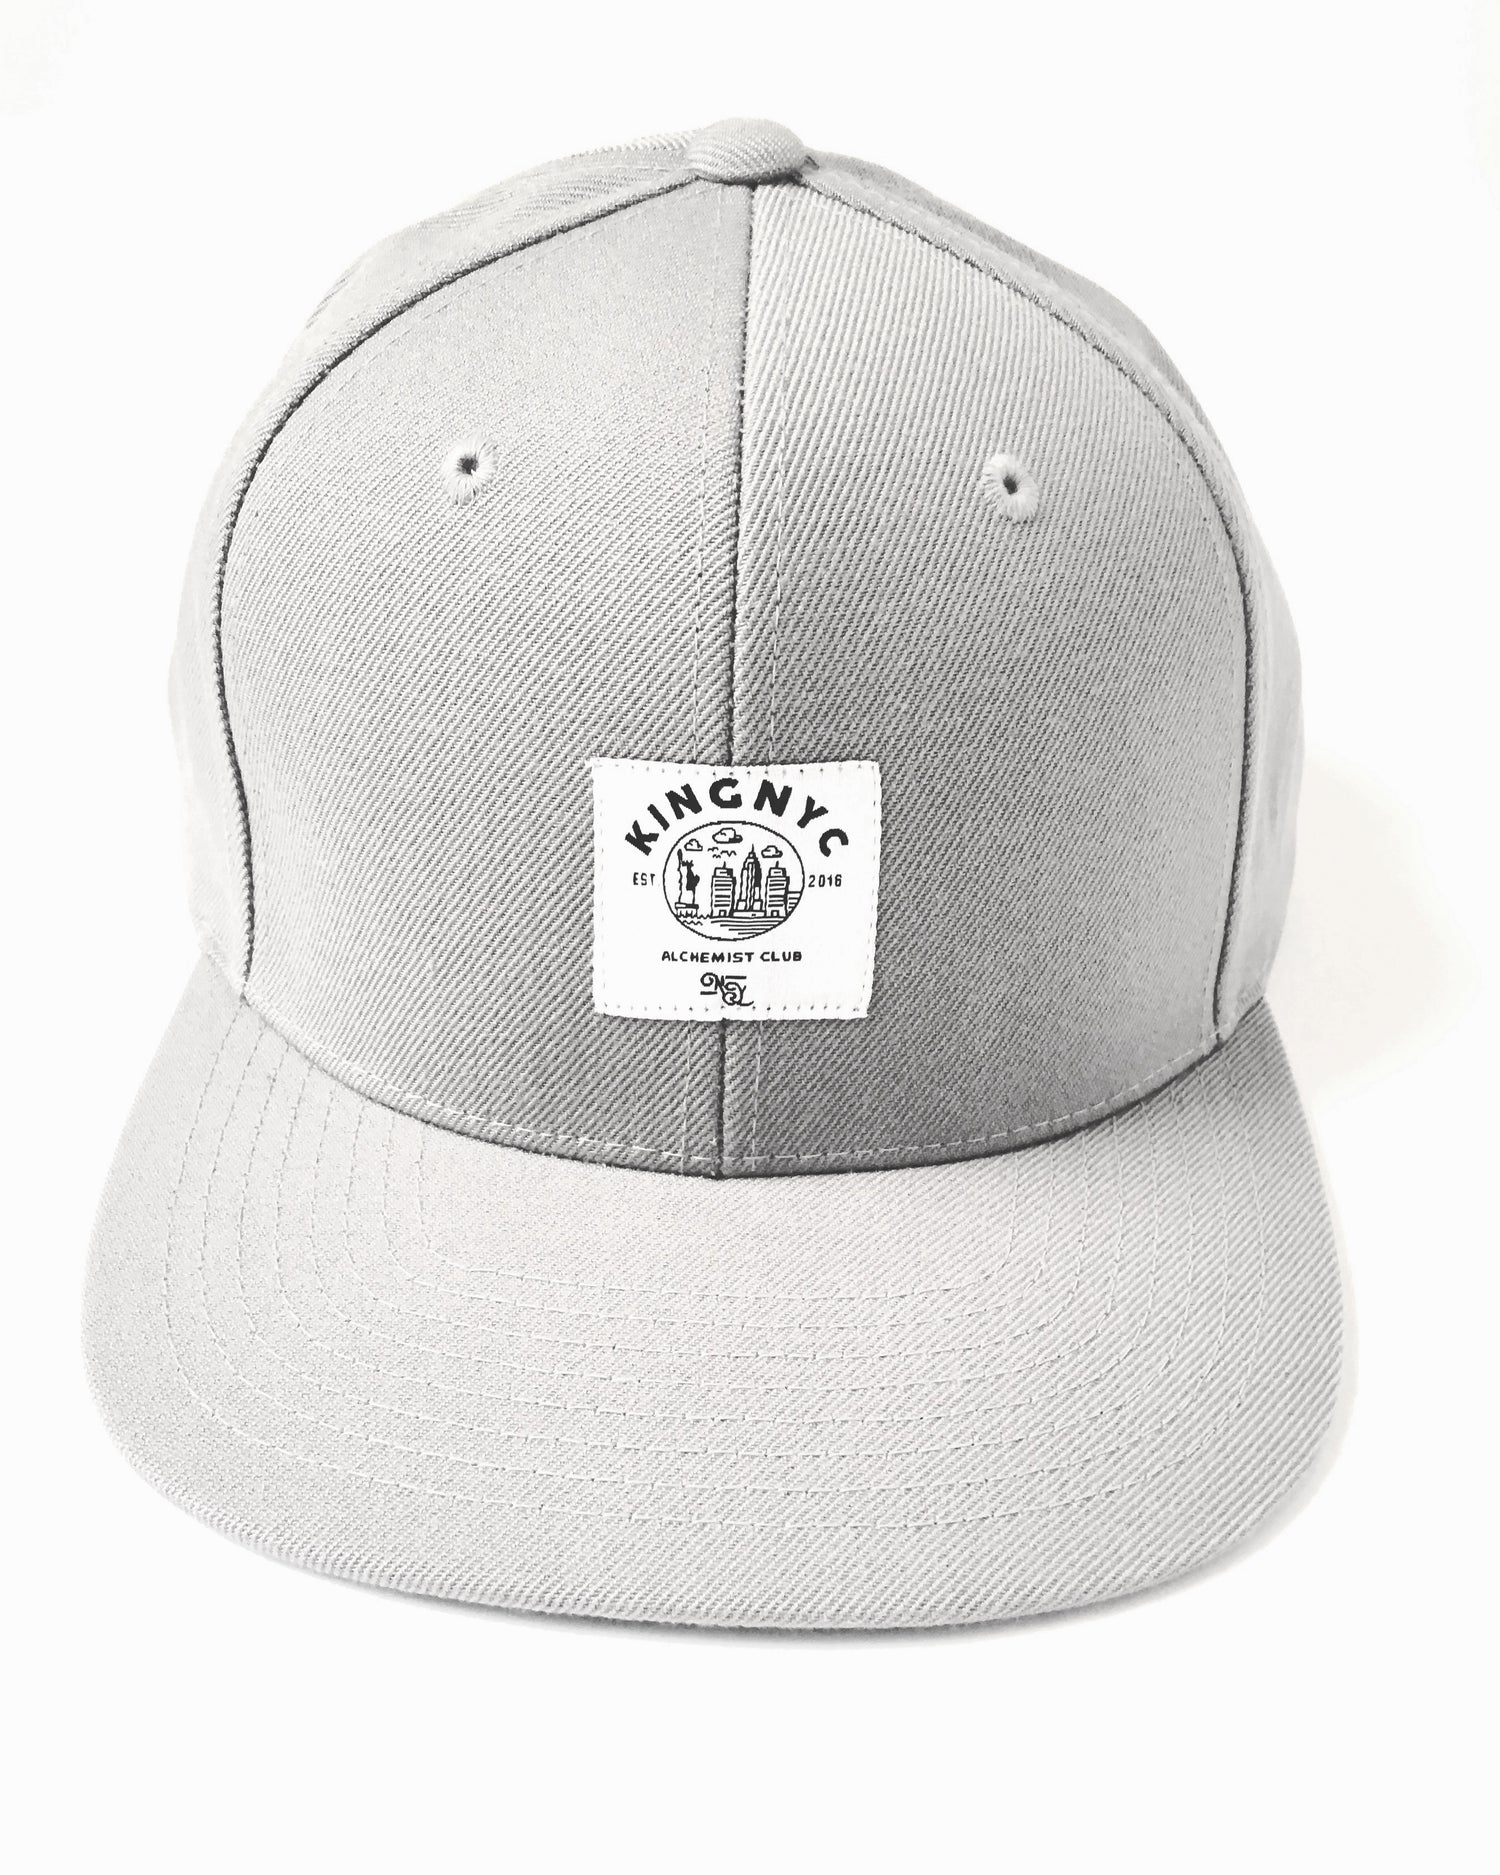 Image of KingNYC Alchemist Club White Label Snapback